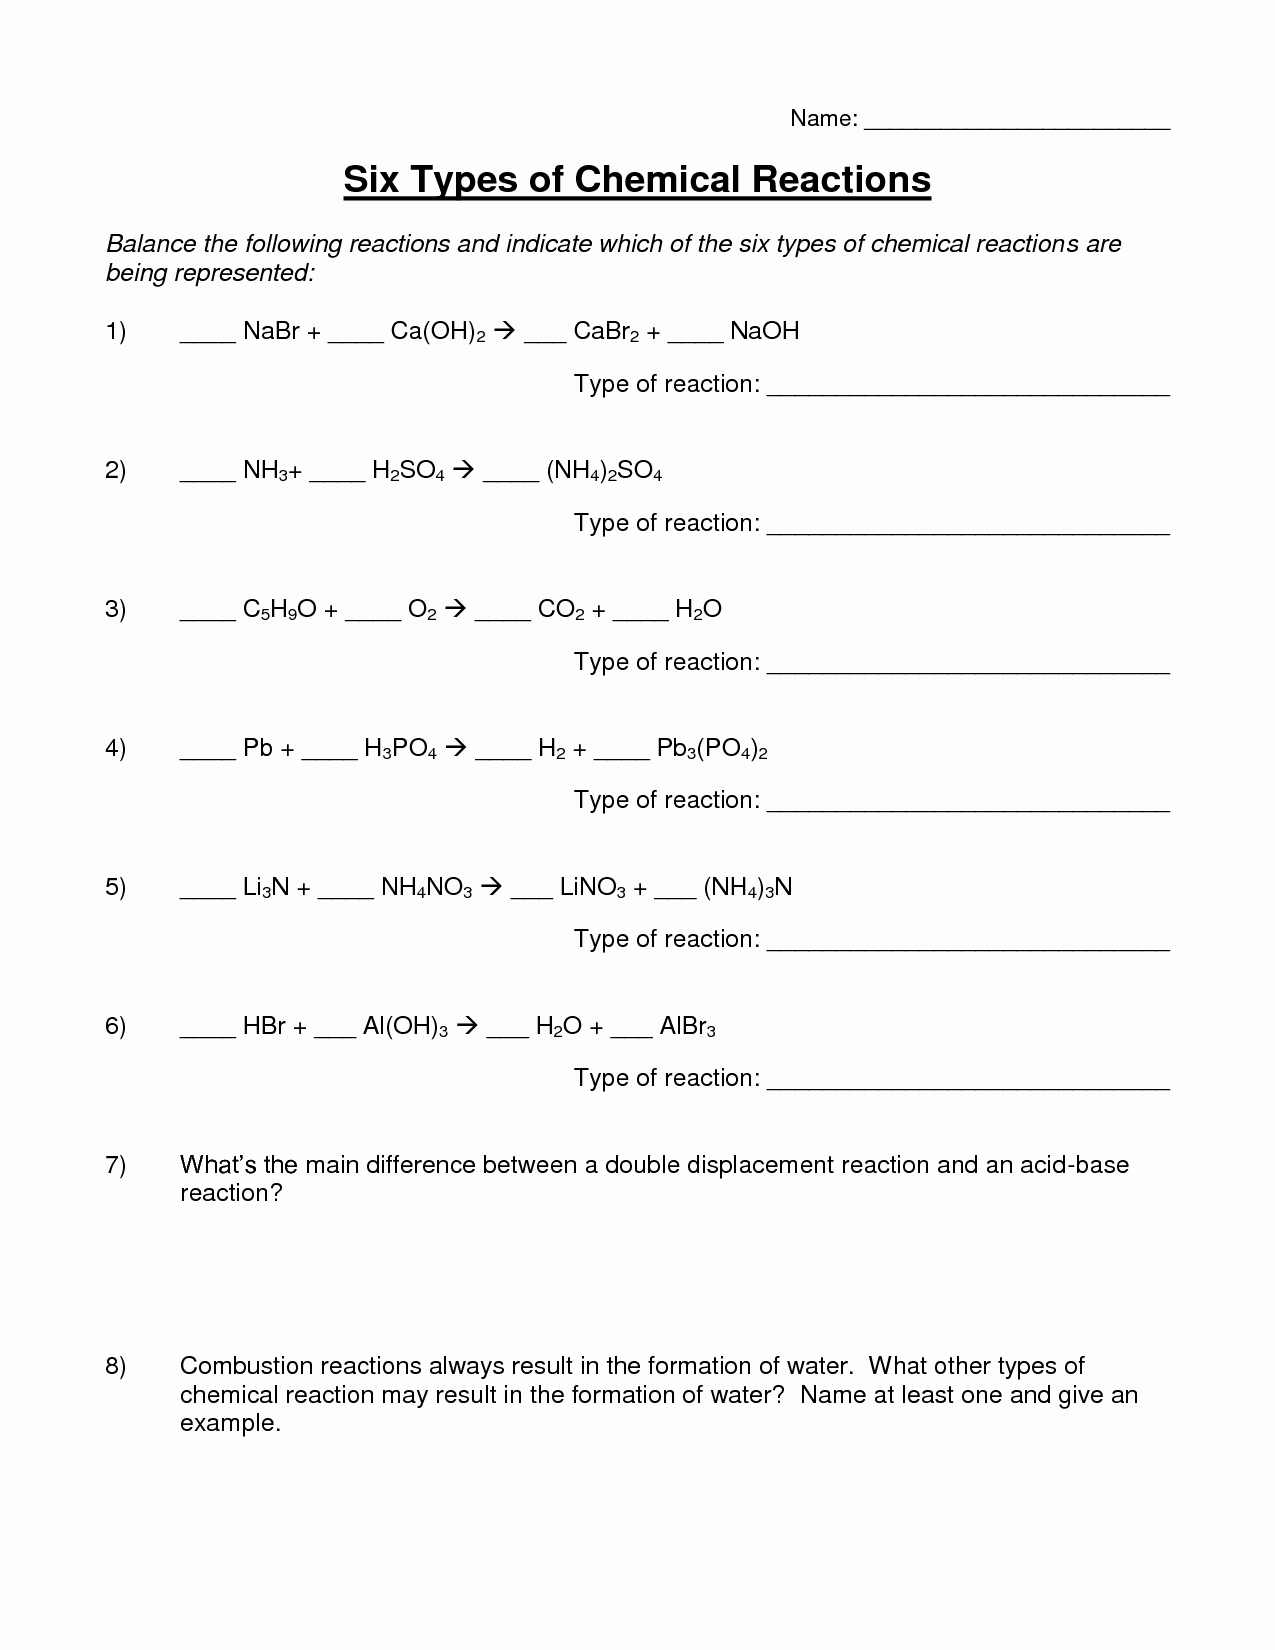 Chemical Reactions Worksheet Answers Inspirational 16 Best Of Types Chemical Reactions Worksheets